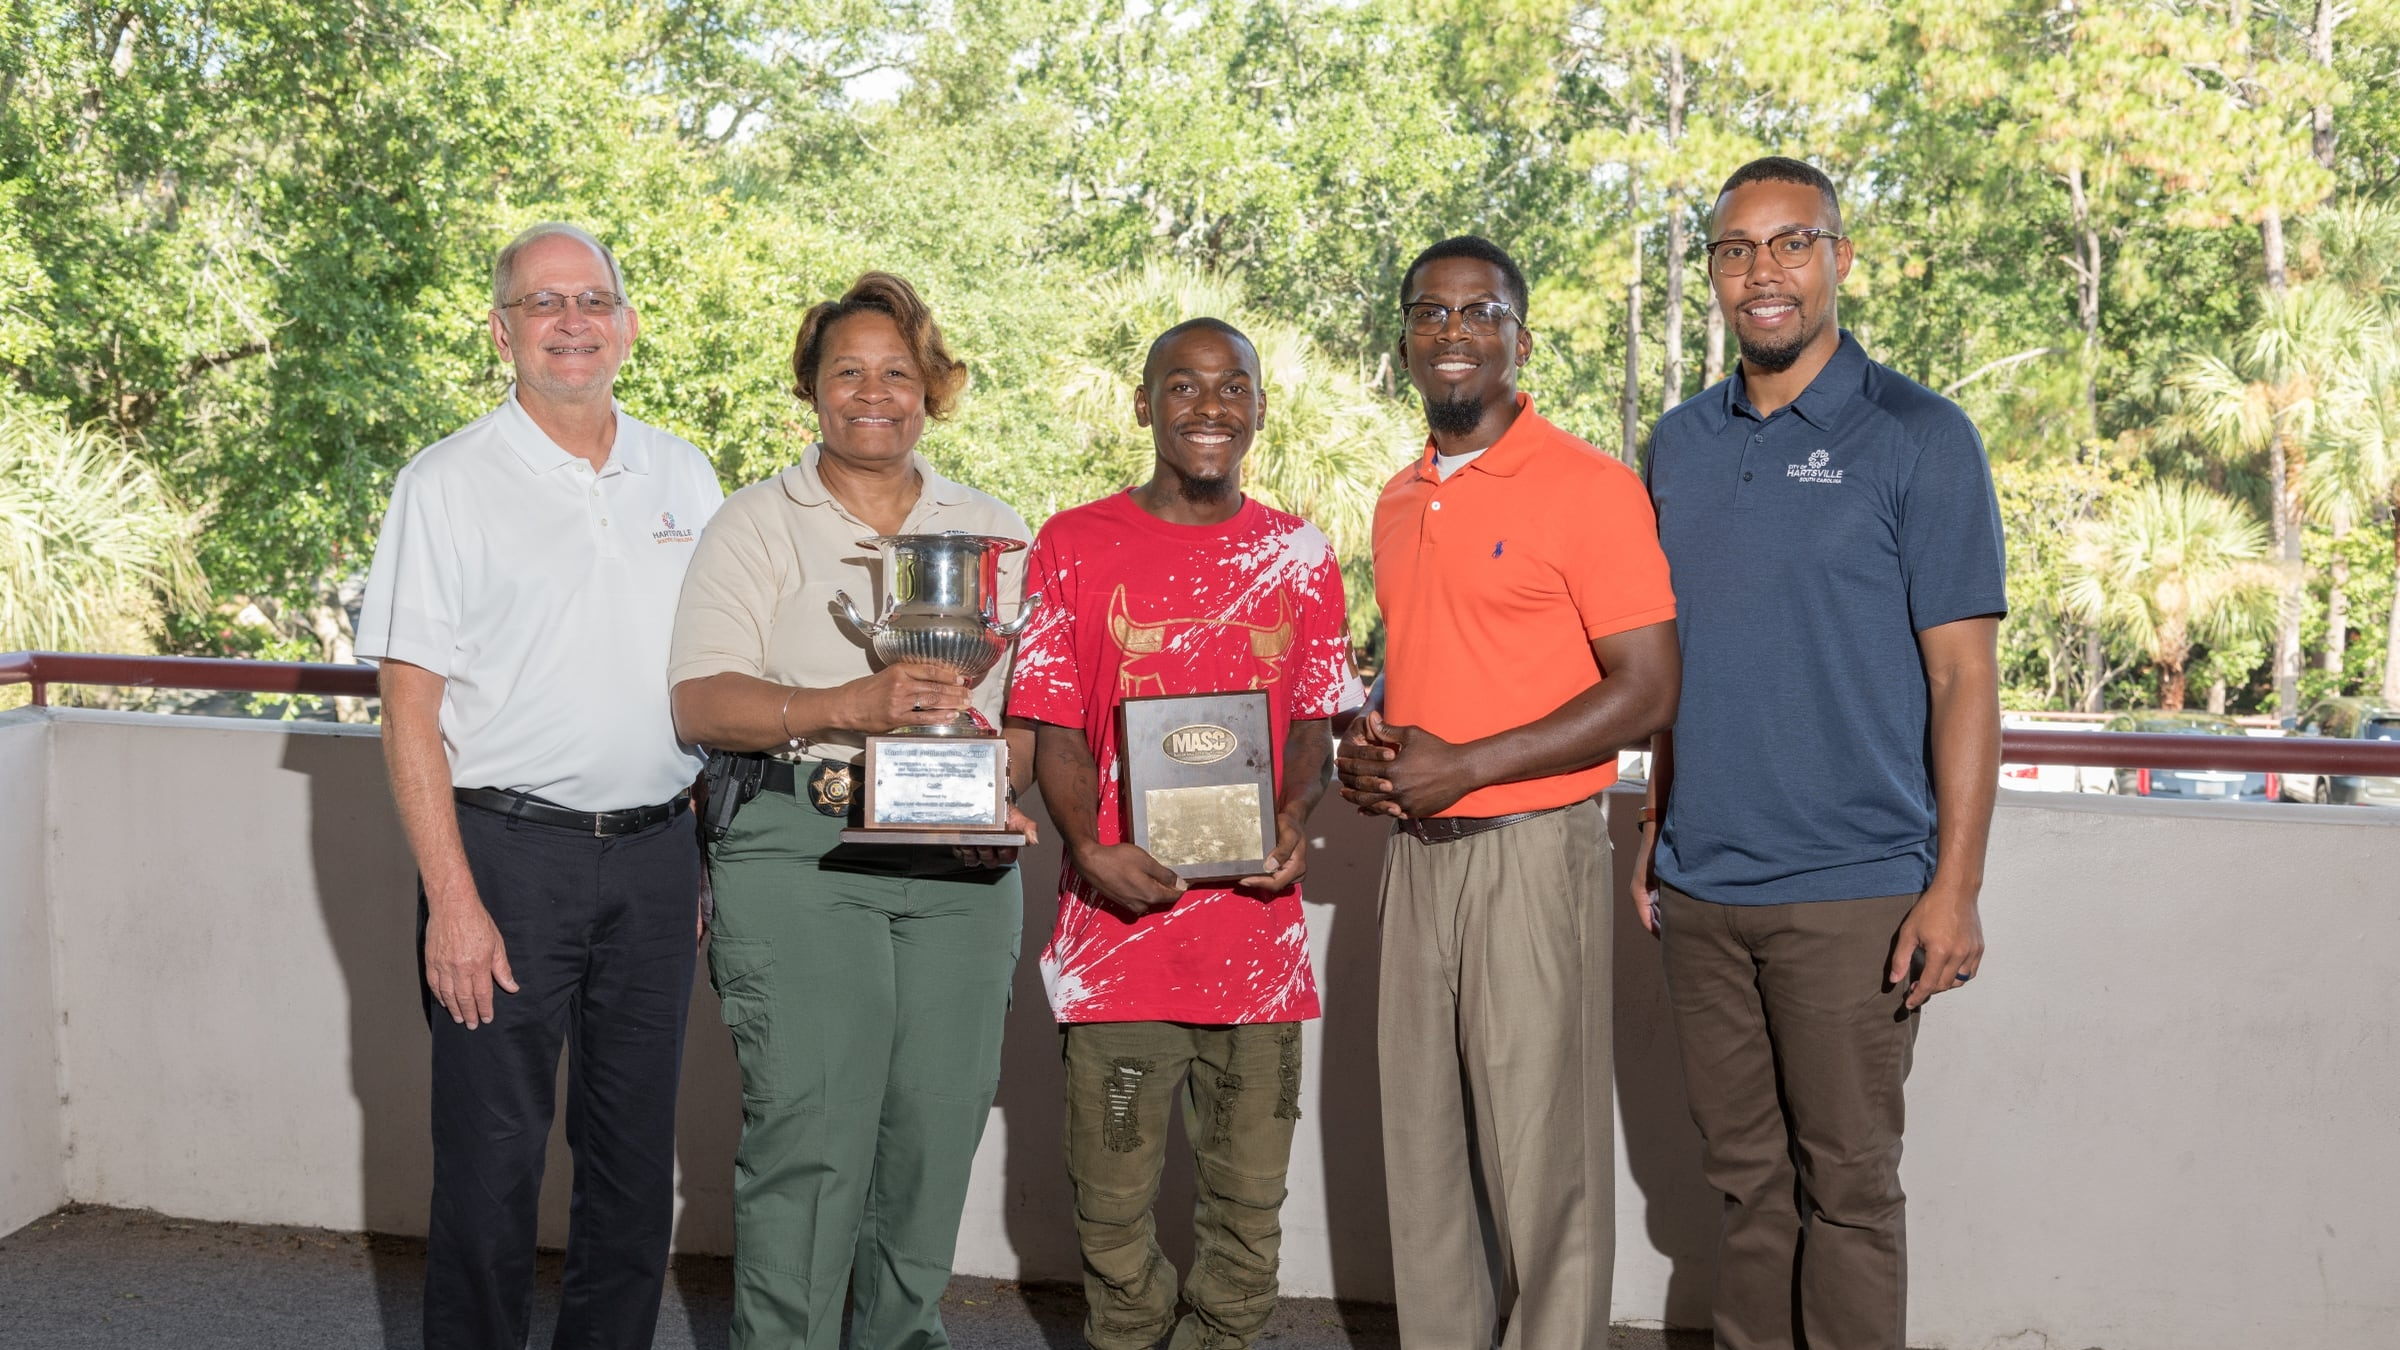 From left to right, Mayor Pro Tem Johnny Andrews, Officer Gloria Mack, Andres Dixon, Pastor Christopher Morgan, and Councilperson Tre Gammage with the MASC award.